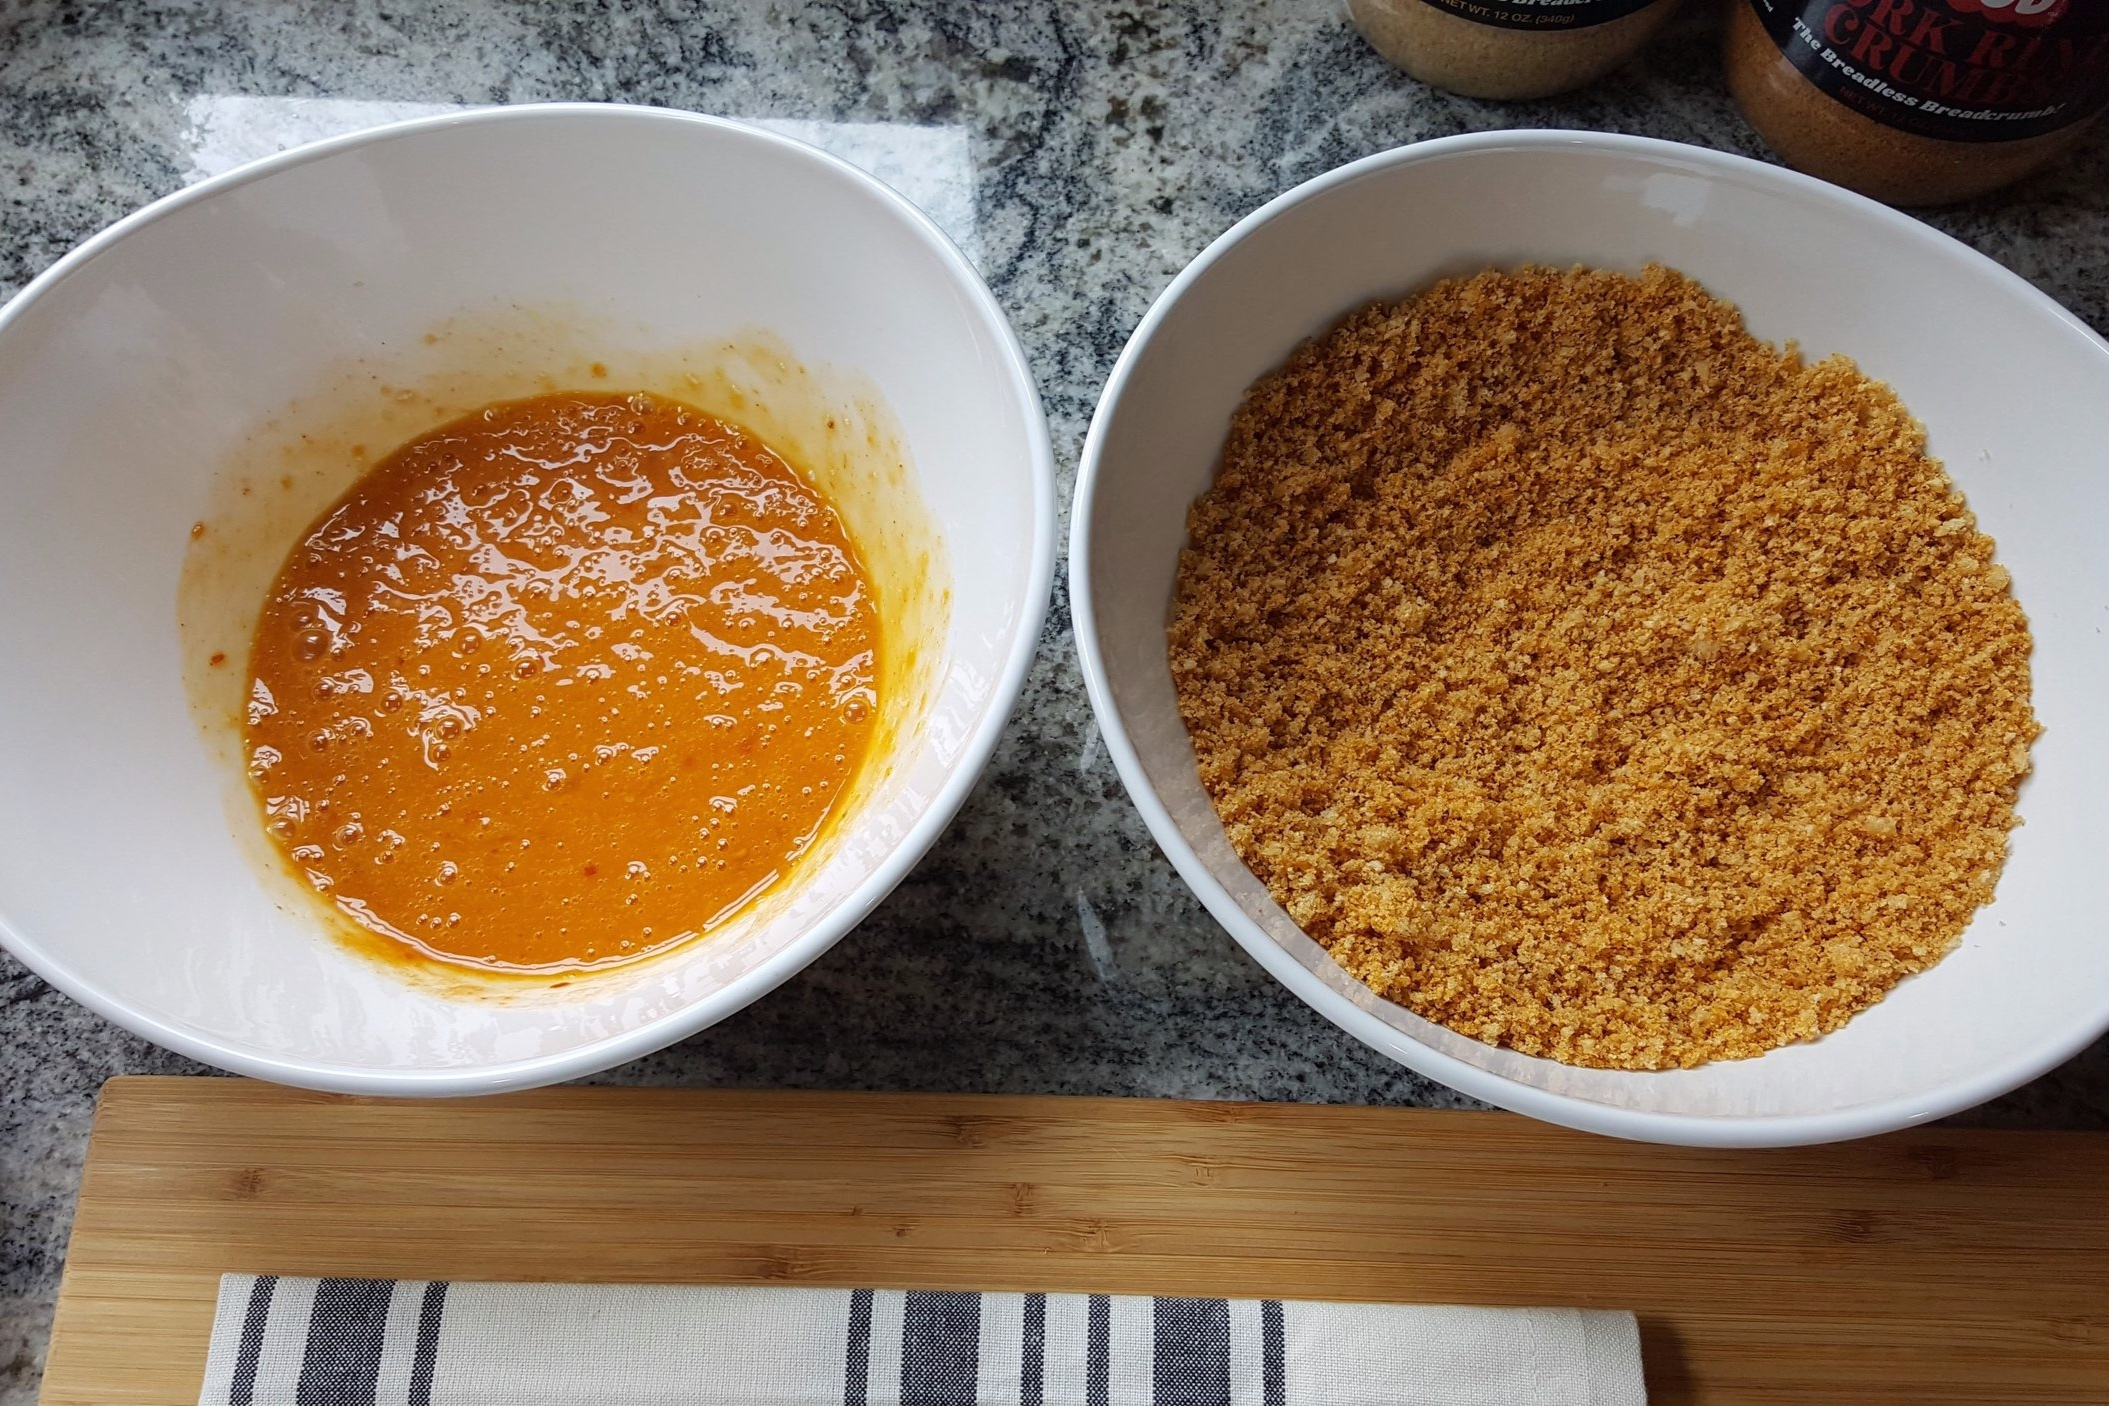 Egg and hot sauce, bread crumb mixture. Ready for chicken!